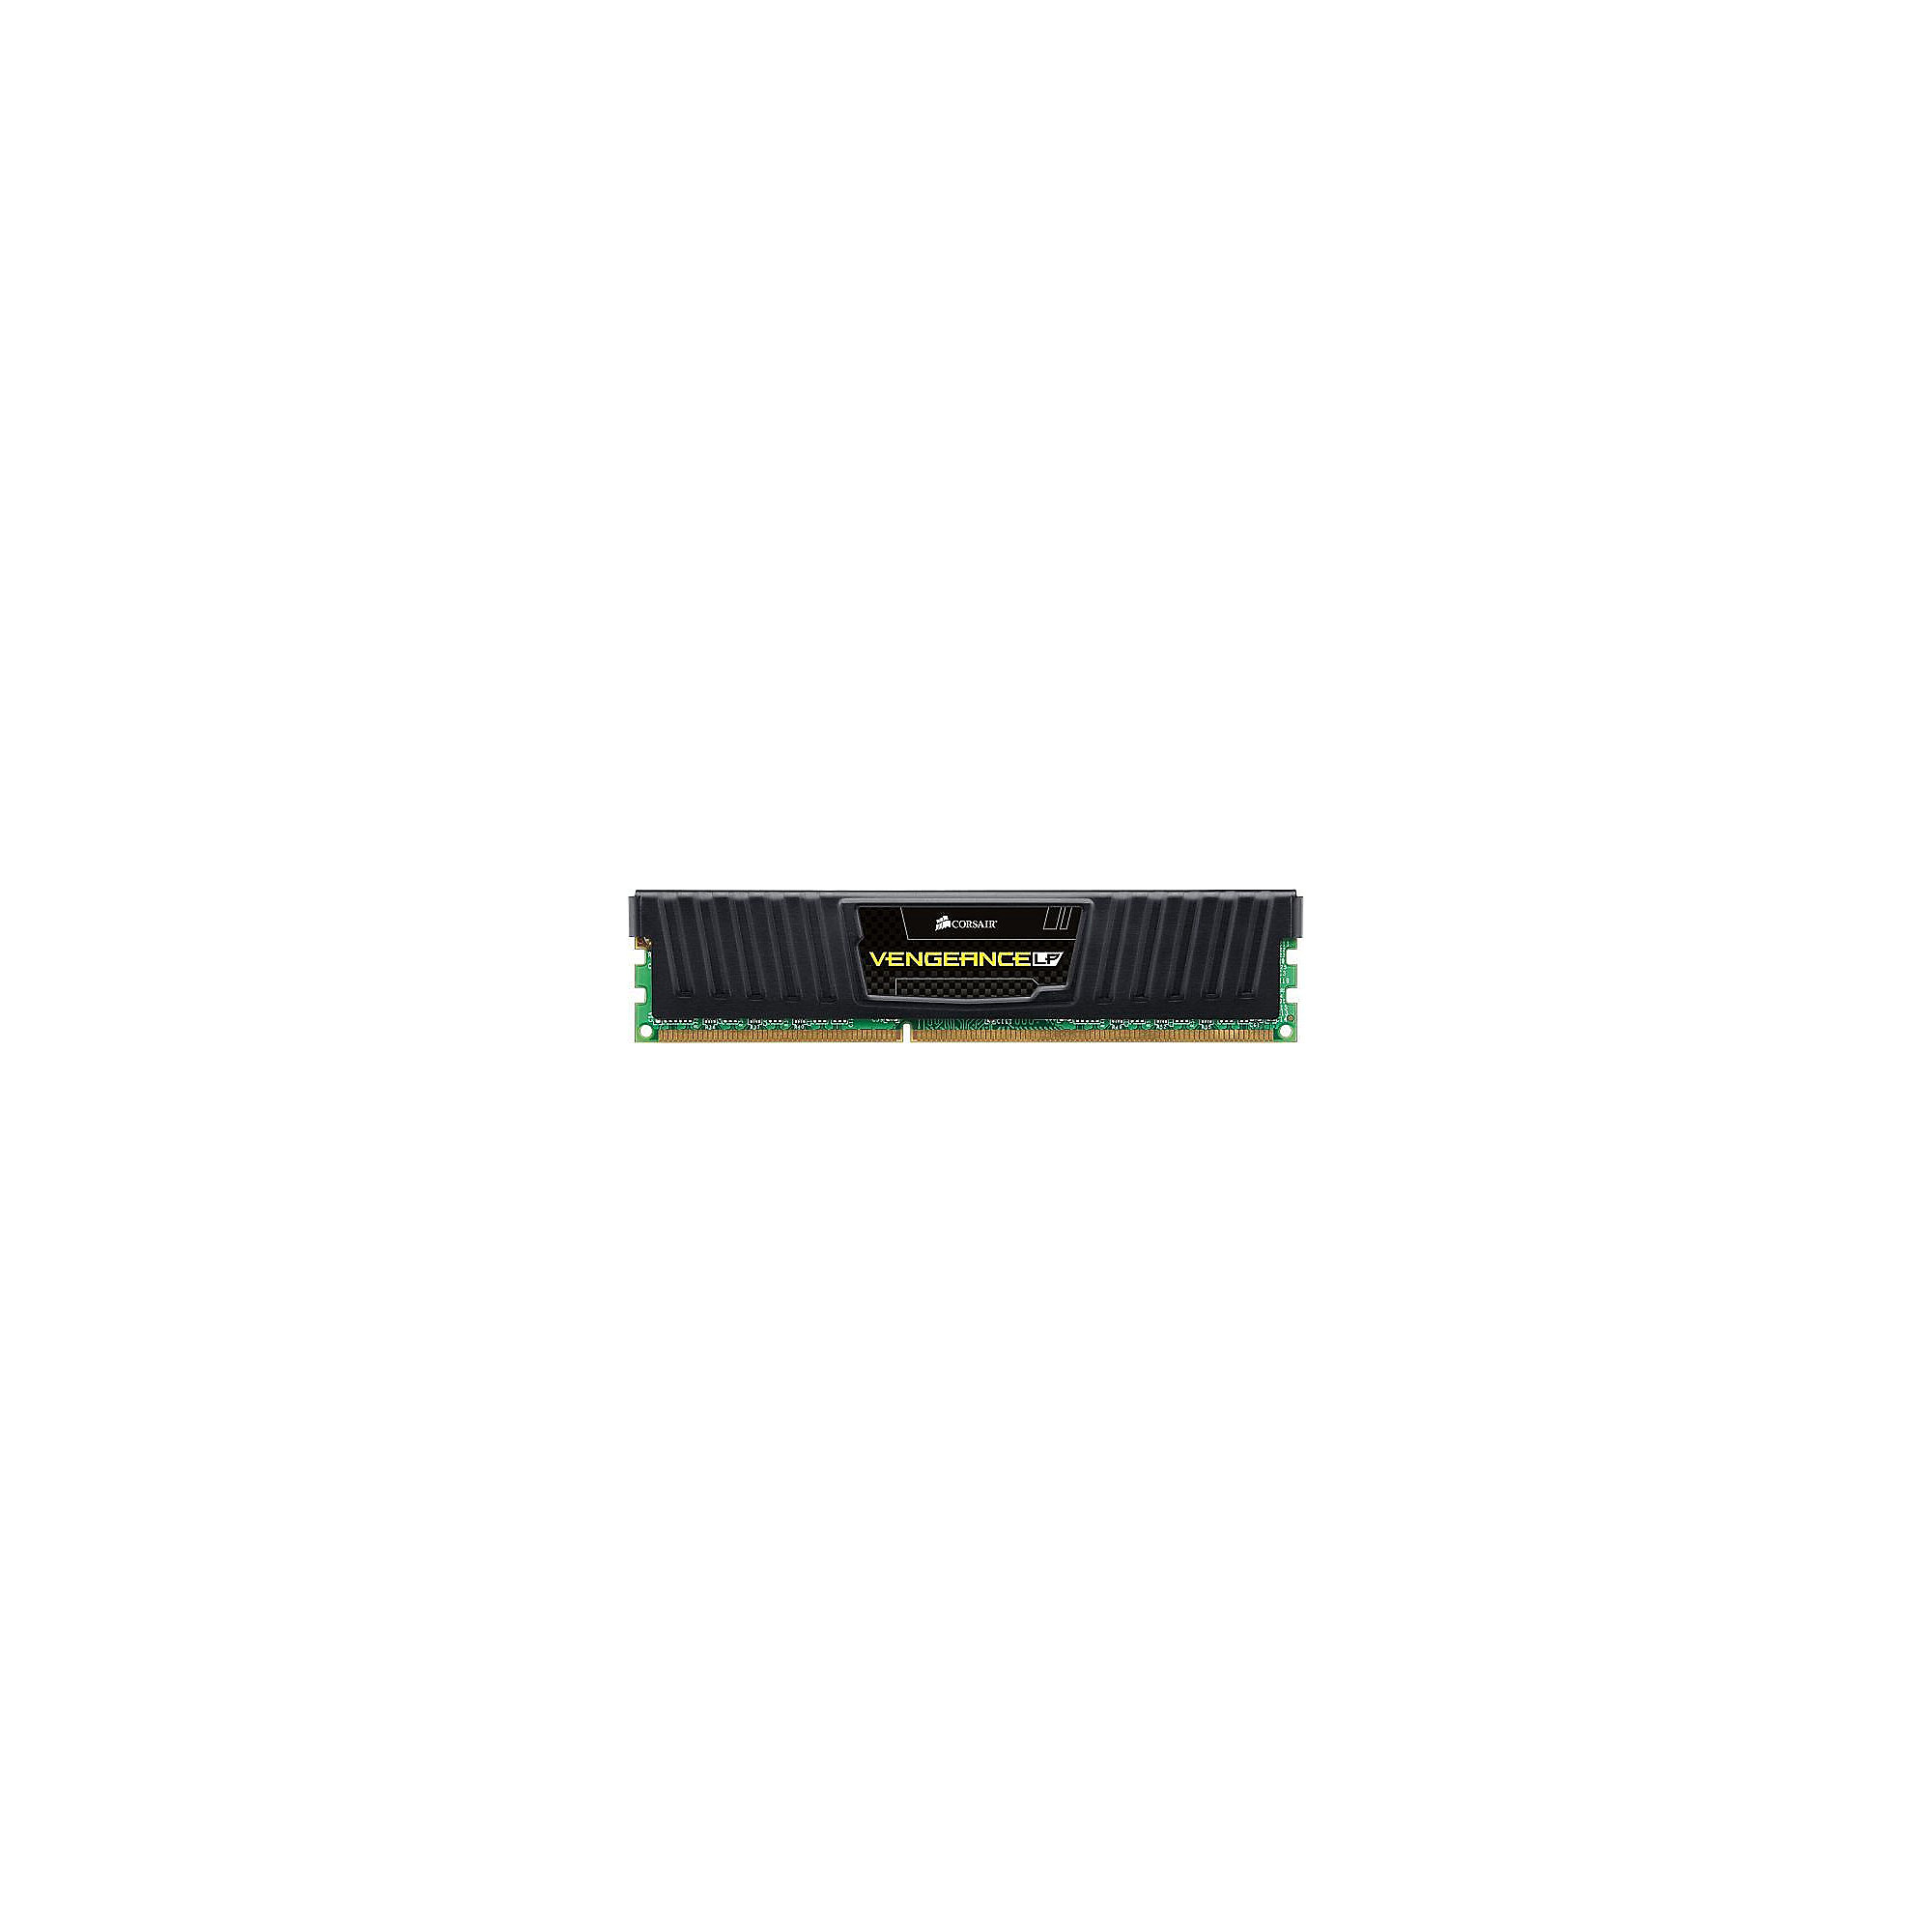 16GB (2x8GB) Corsair Vengeance Low DDR3-1600 CL10 RAM Low Profile - Kit